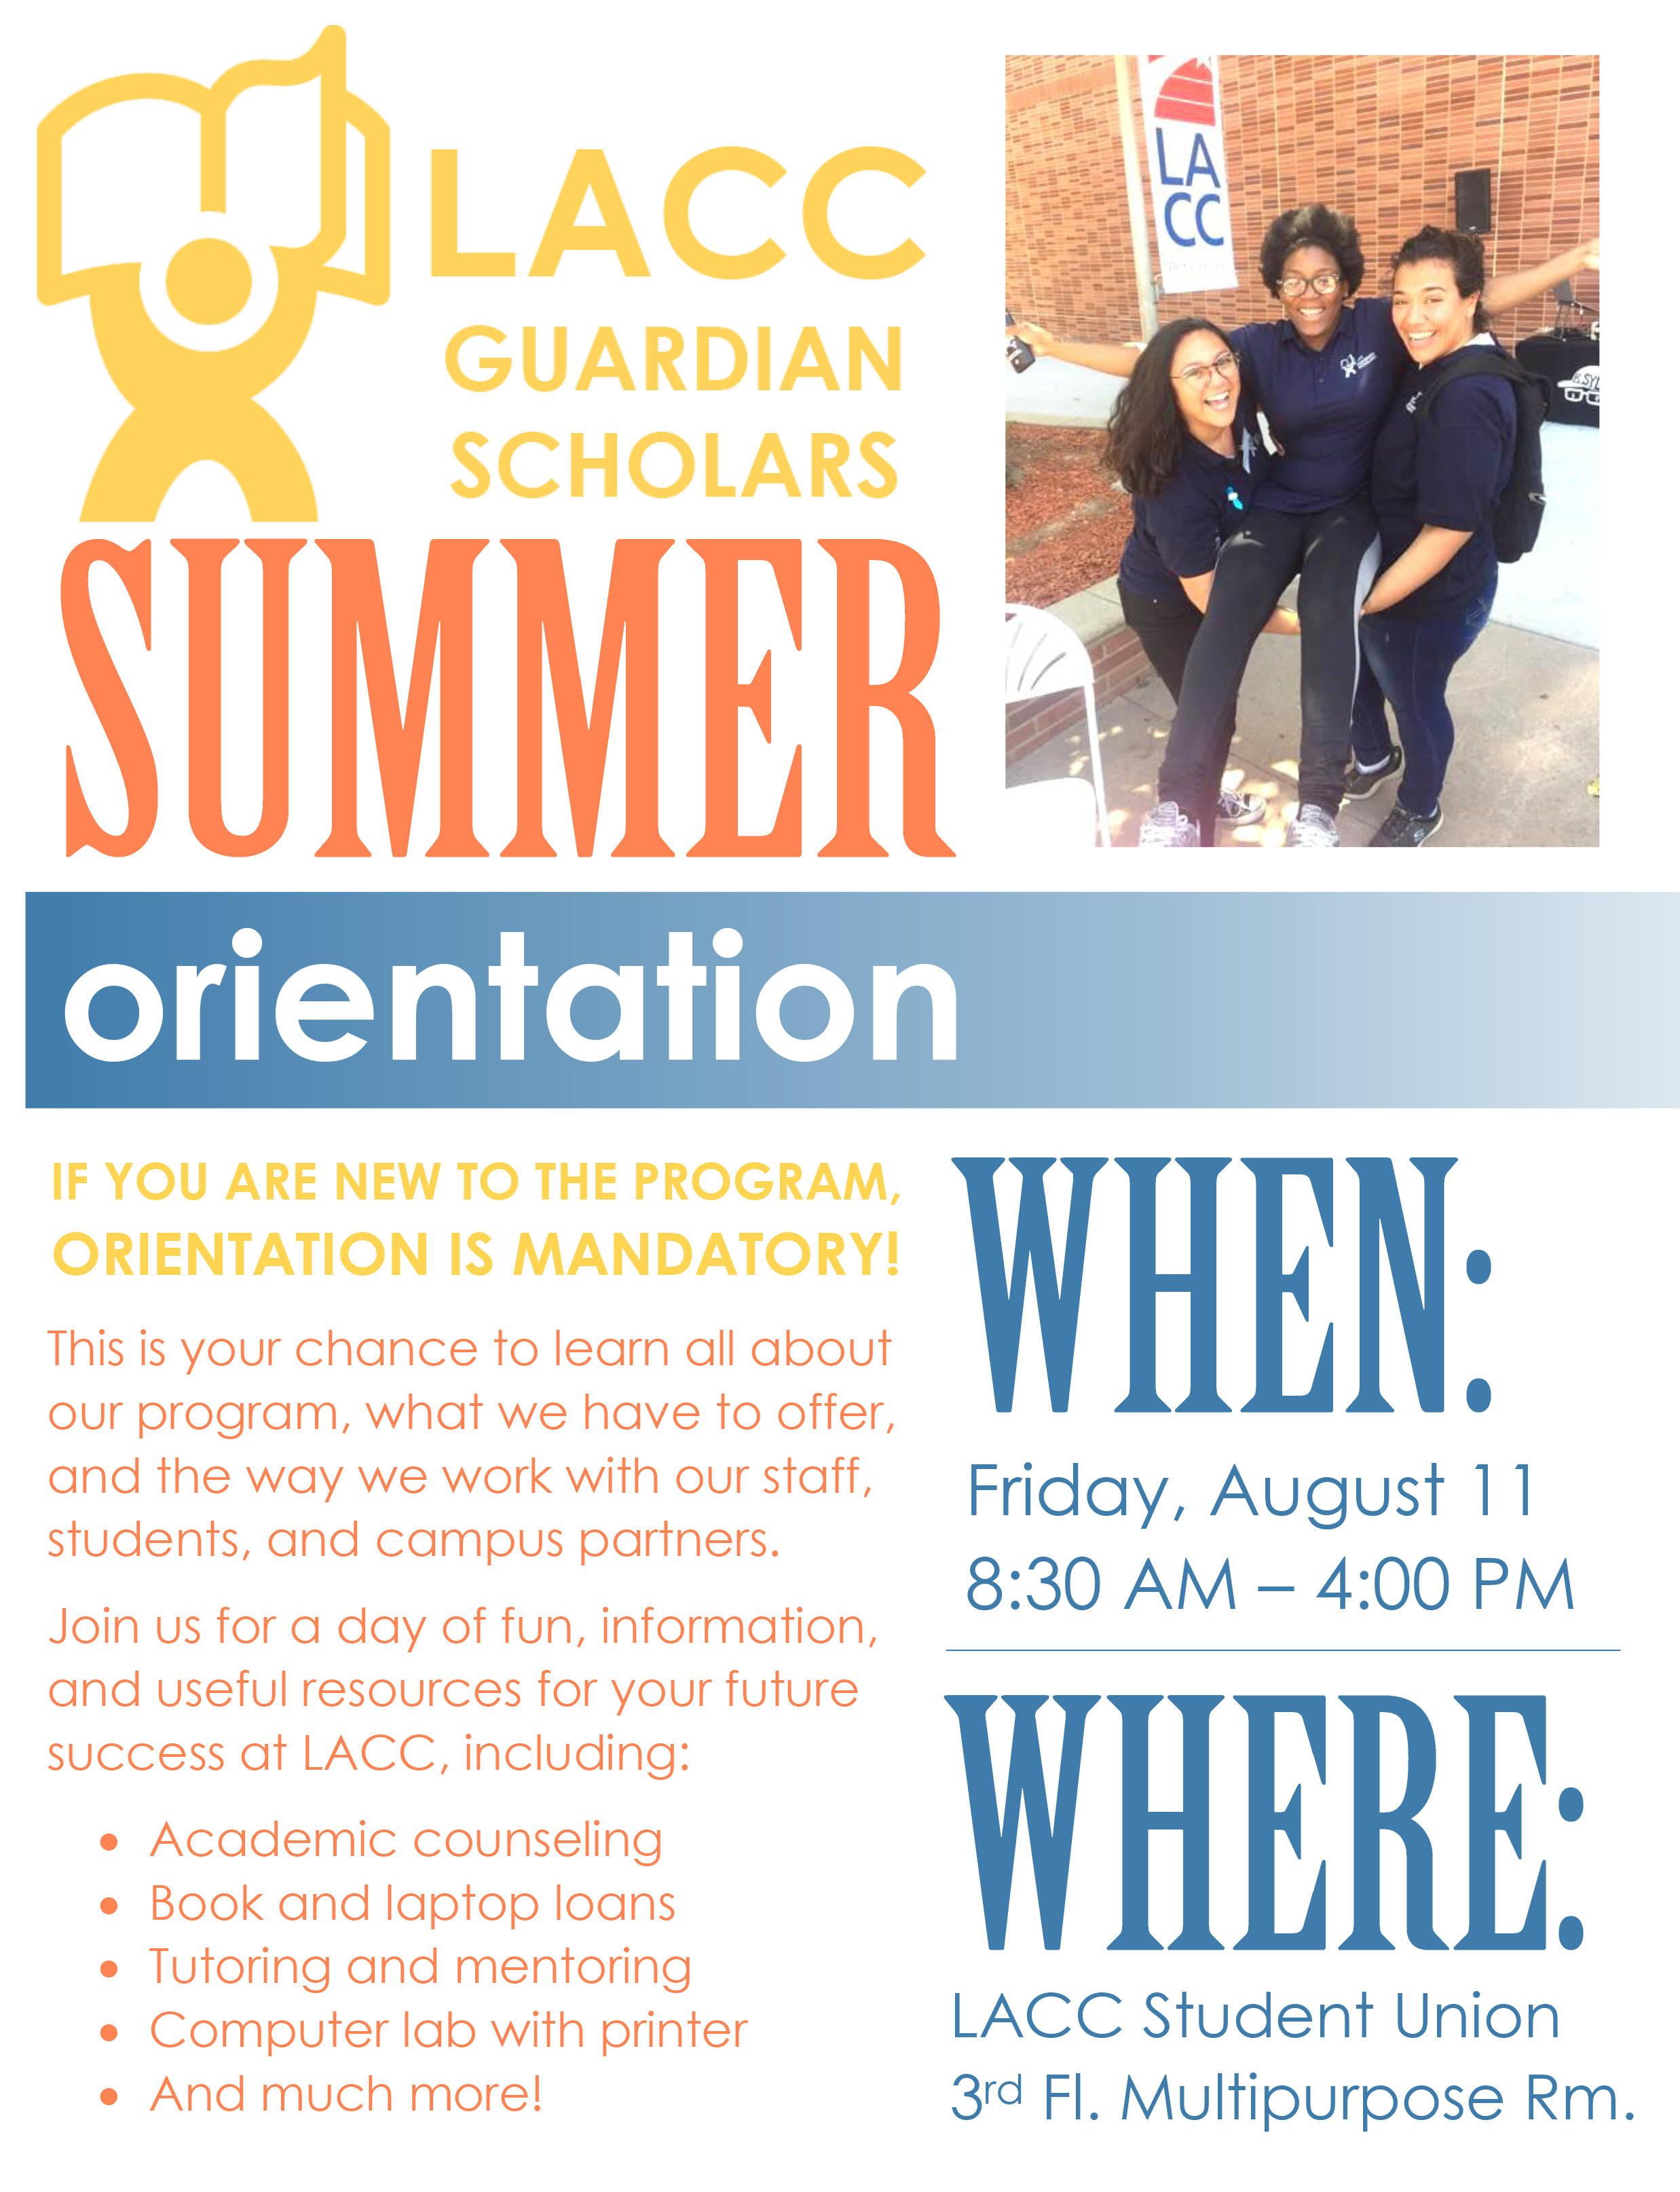 Our Summer Orientation 2017 Flyer. This is only for new students who have not attended an orientation before. It will take place August 11 from 8:30 am - 4:00 pm at the Student Union, 3rd Floor, Multipurpose Room